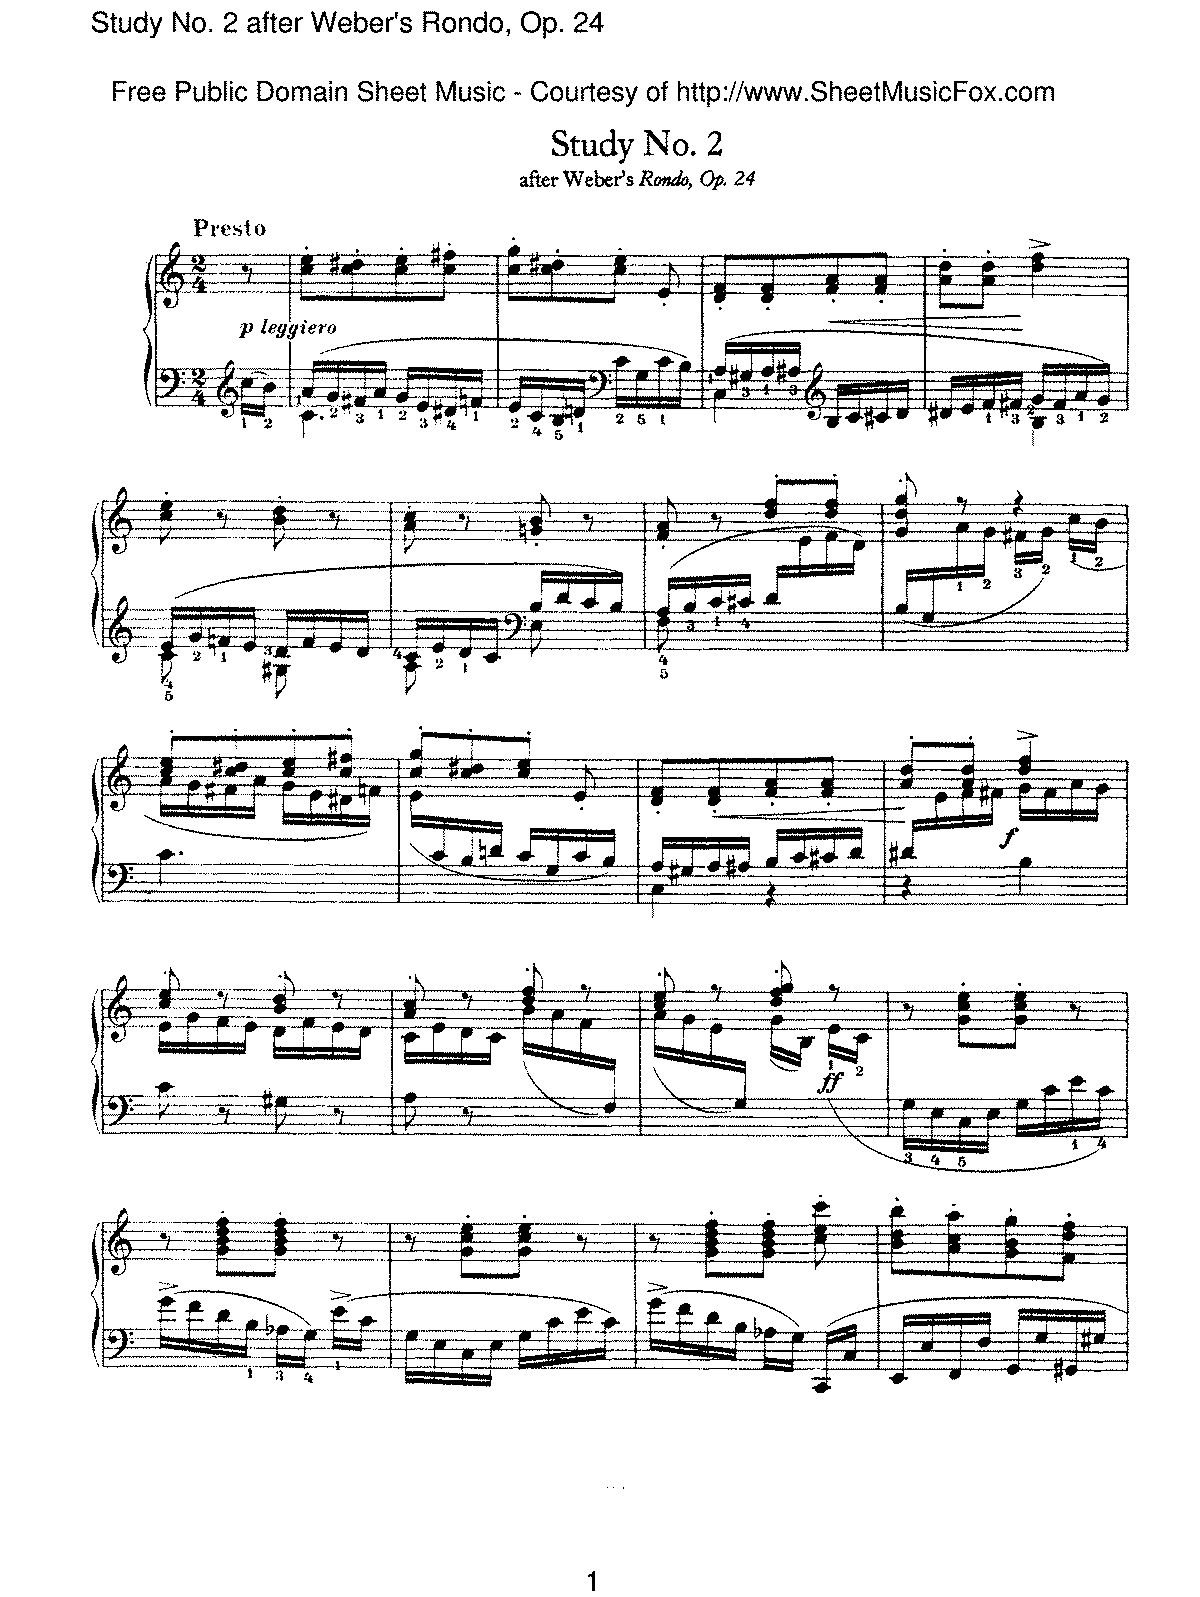 Brahms - Study No.2 after Weber's Rondo, Op.24.pdf